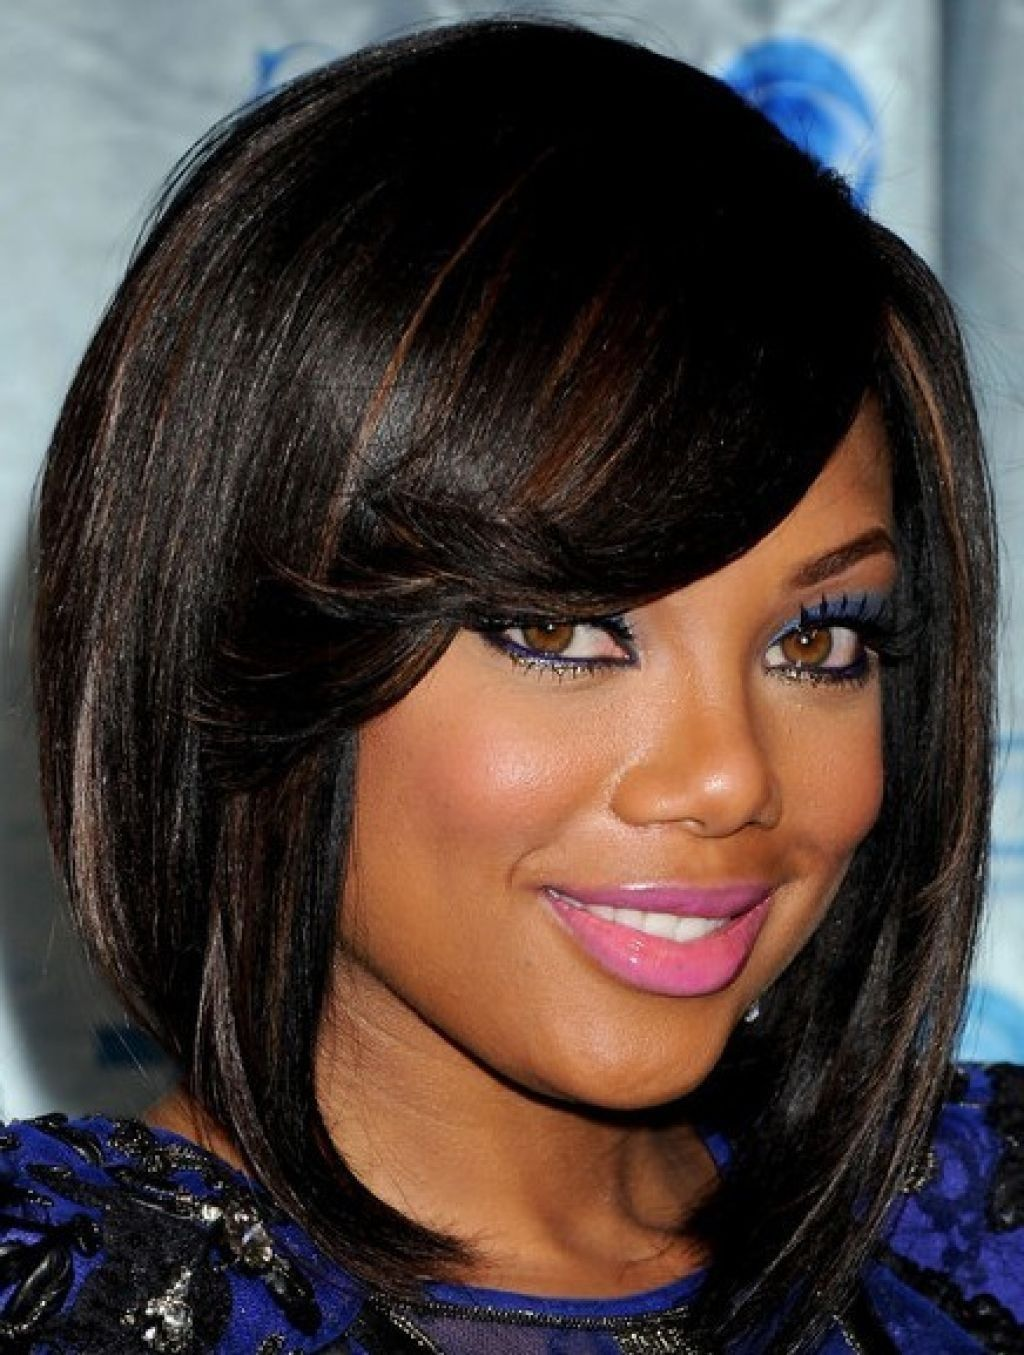 125+ Elegant Bob Hairstyles for African American Women (Updated 2021) ea29217d7a4583876d594c683ec5ce54